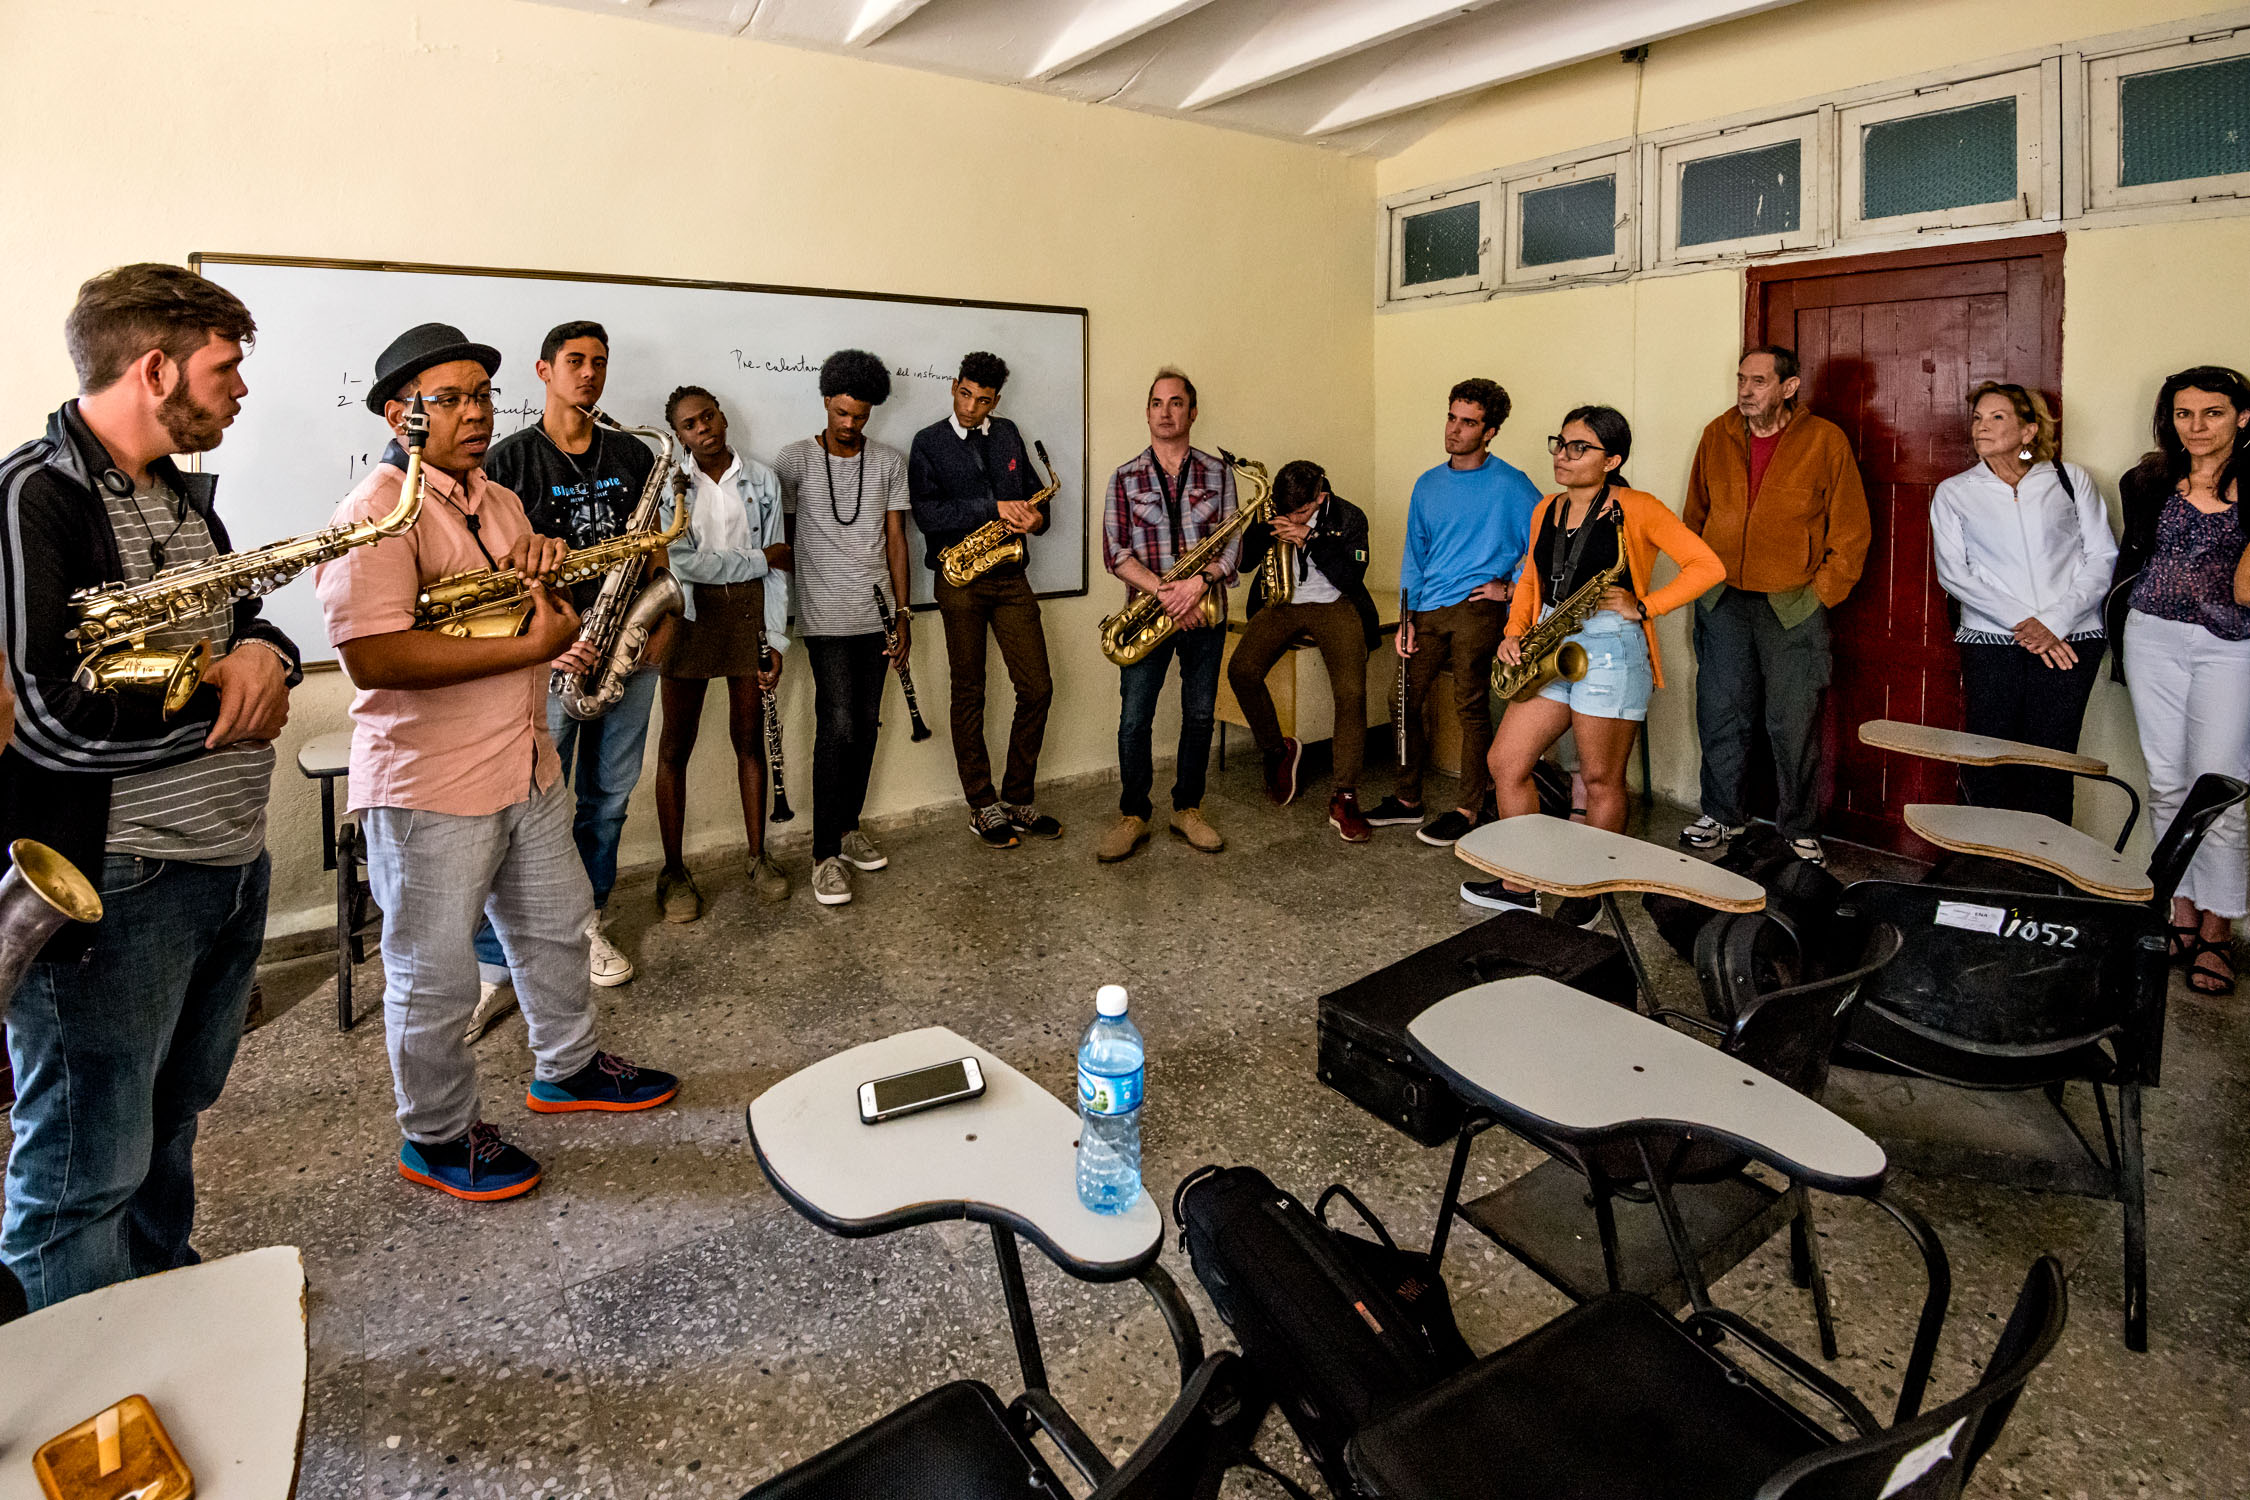 Roman Filiu & Peter Apfelbaum teaching woodwind students at Escuela Nacional de Arte (La ENA), Havana, Cuba, January 2019 (Photo by David Garten)